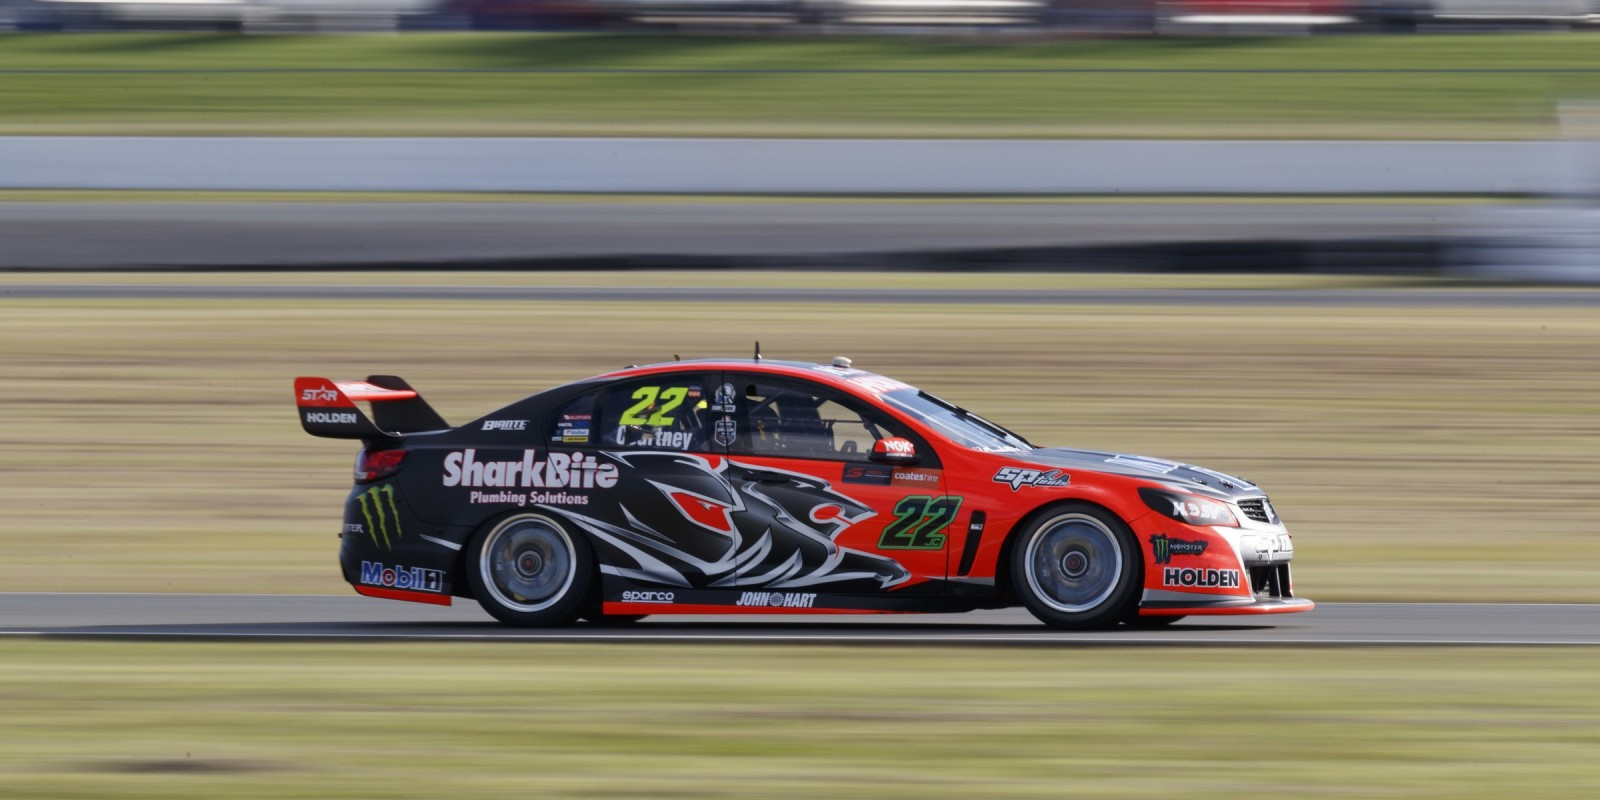 James Courtney competes in the 2016 Supercars season in Ipswich